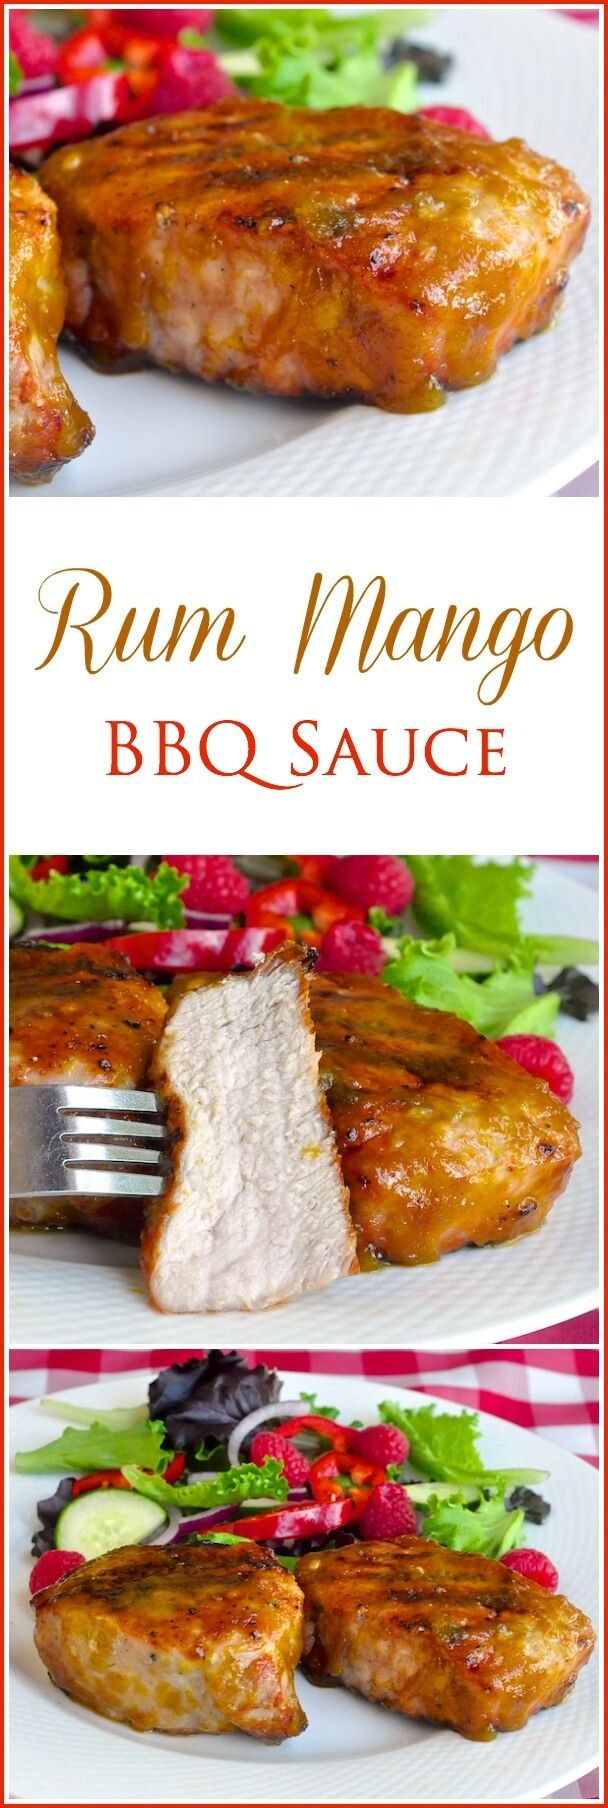 Rum Mango Barbecue Sauce - Add a totally tropical twist to your grilled chicken or pork with this amazing, flavorful mango barbecue sauce. A splash of rum adds even more bright flavor